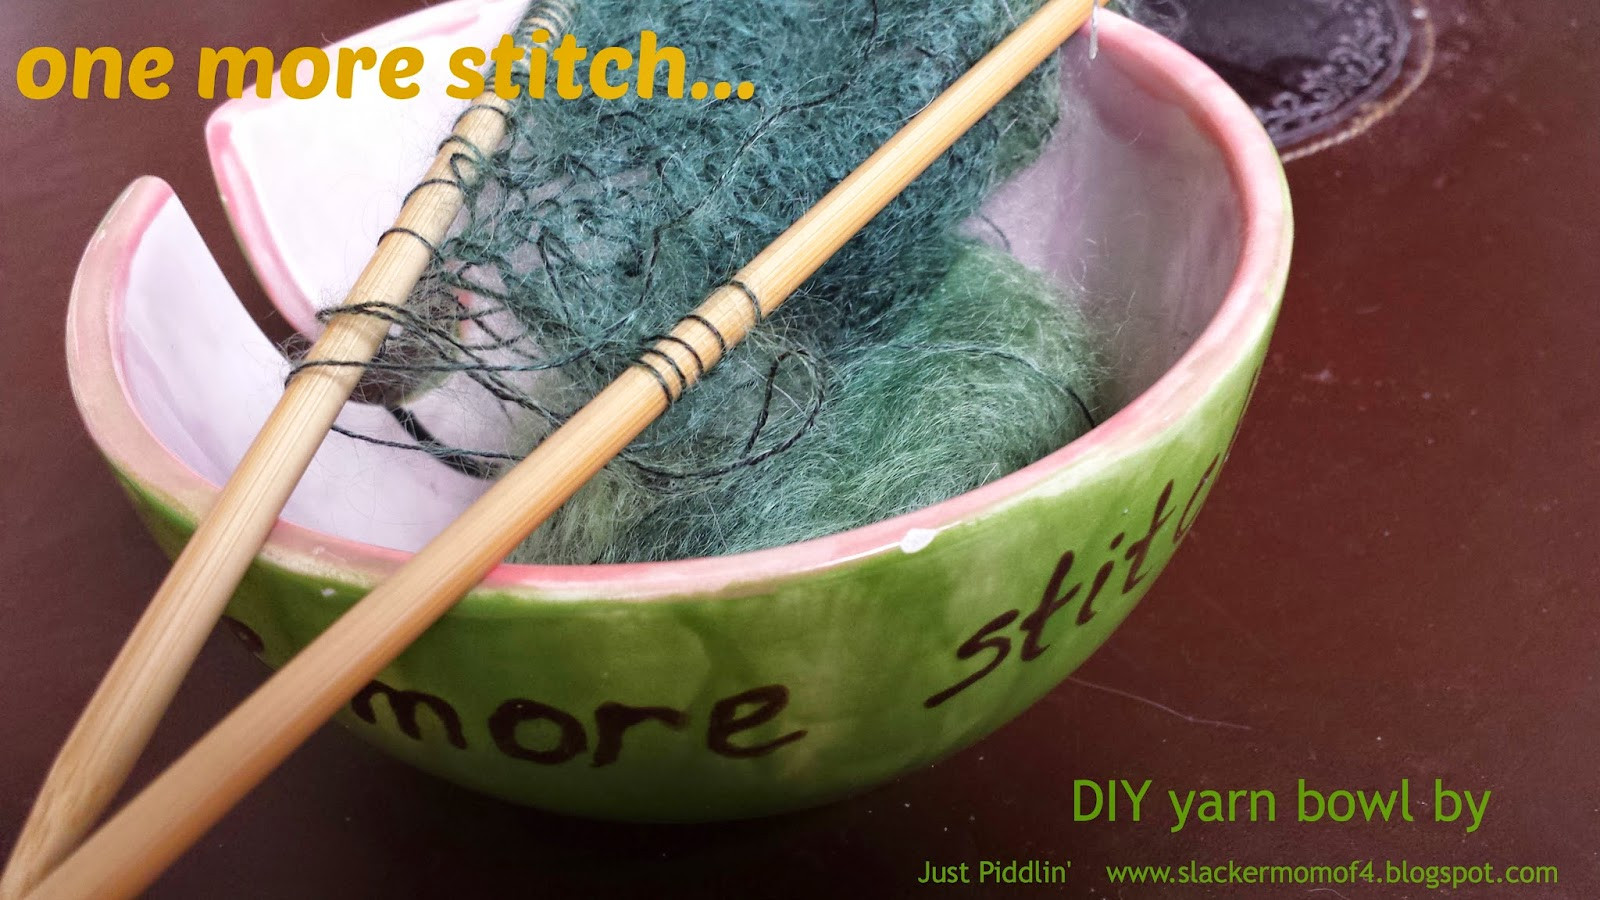 Best ideas about Yarn Bowl DIY . Save or Pin just piddlin WIP DIY Yarn Bowl Now.